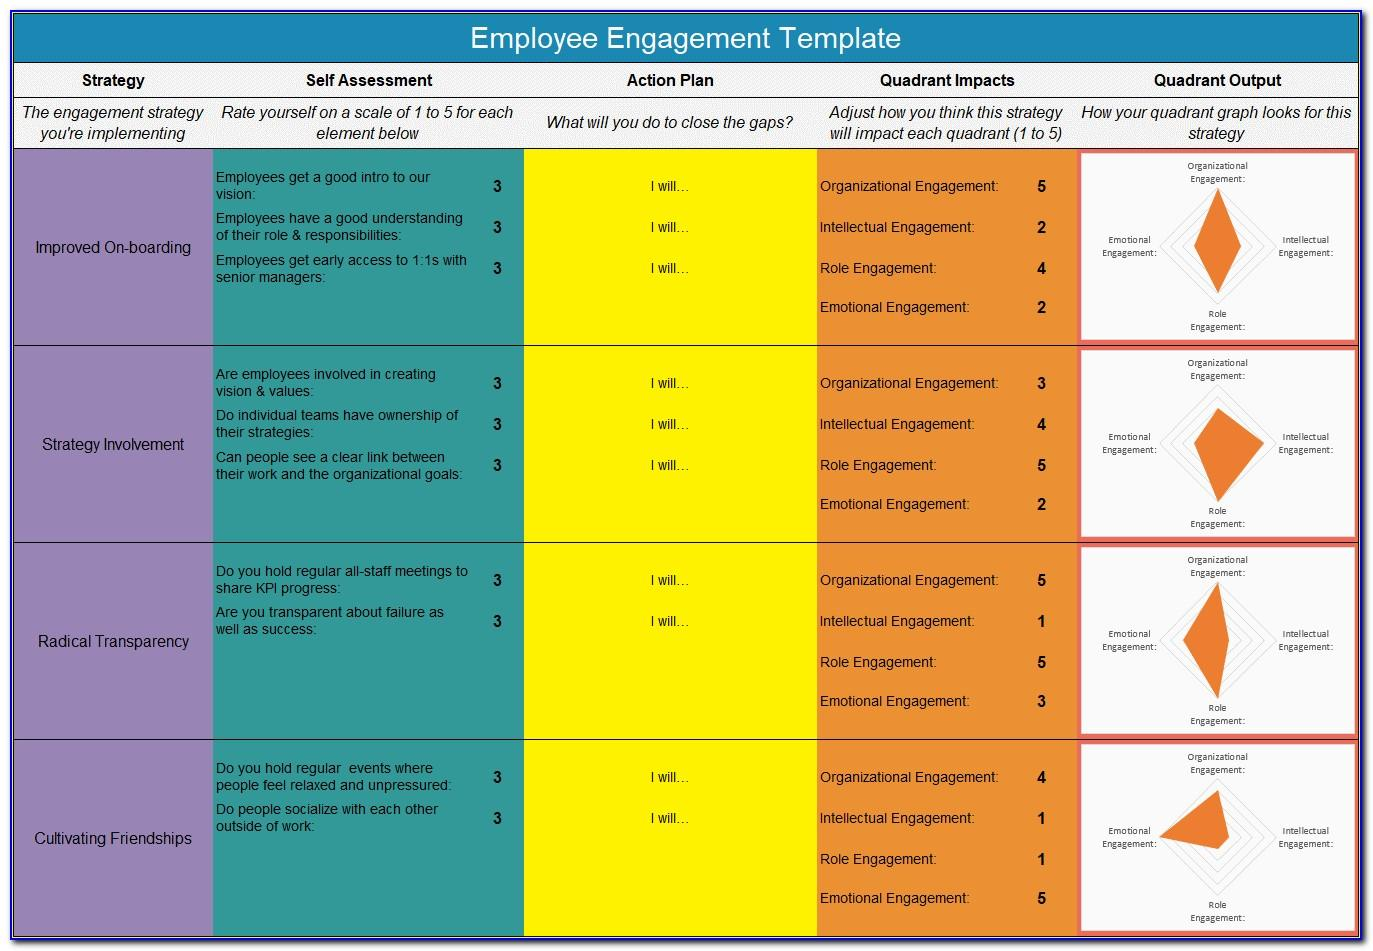 Employee Engagement Survey Action Plan Template